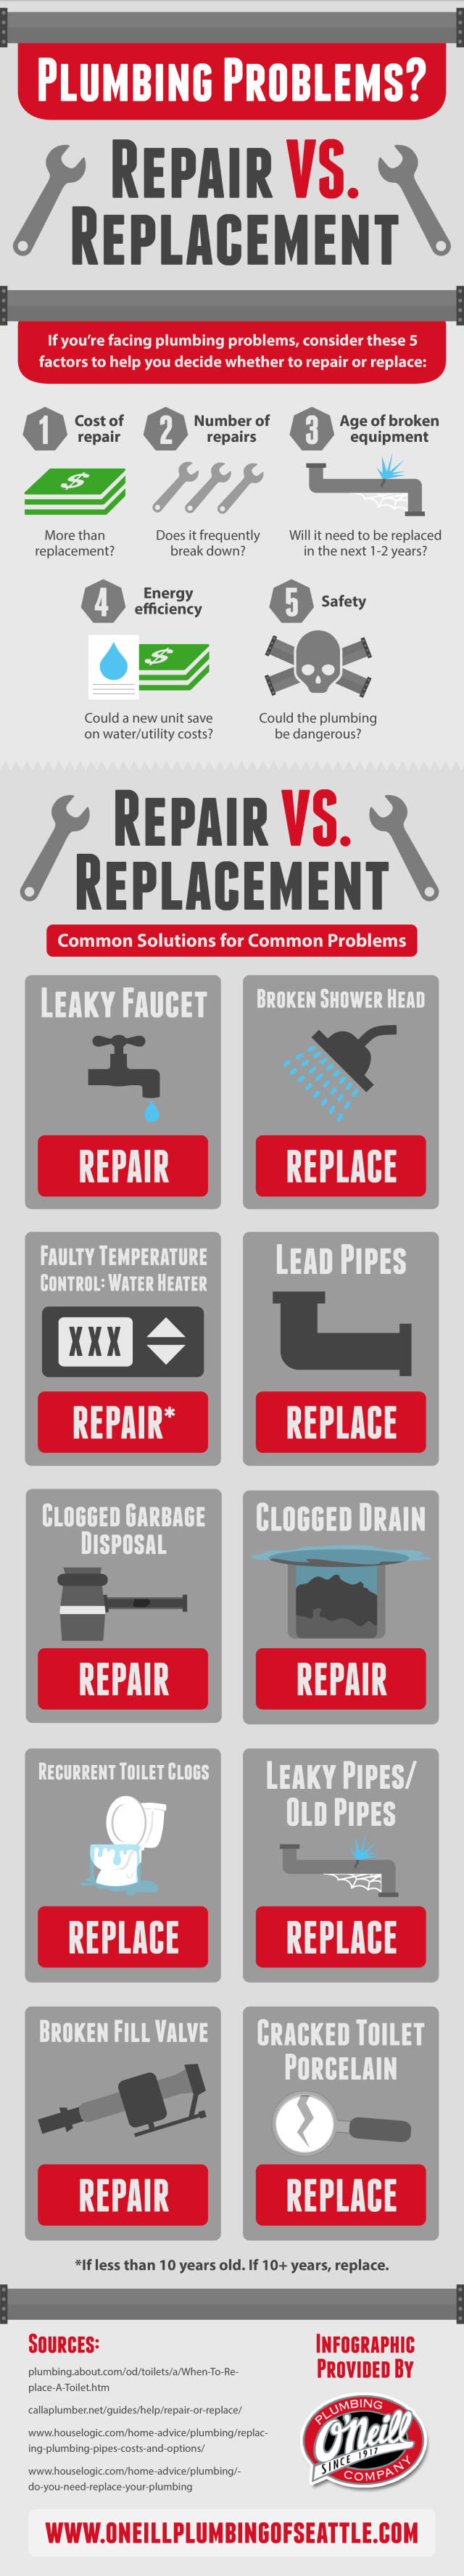 Plumbing-Problems-Repair-vs.-Replacement-640